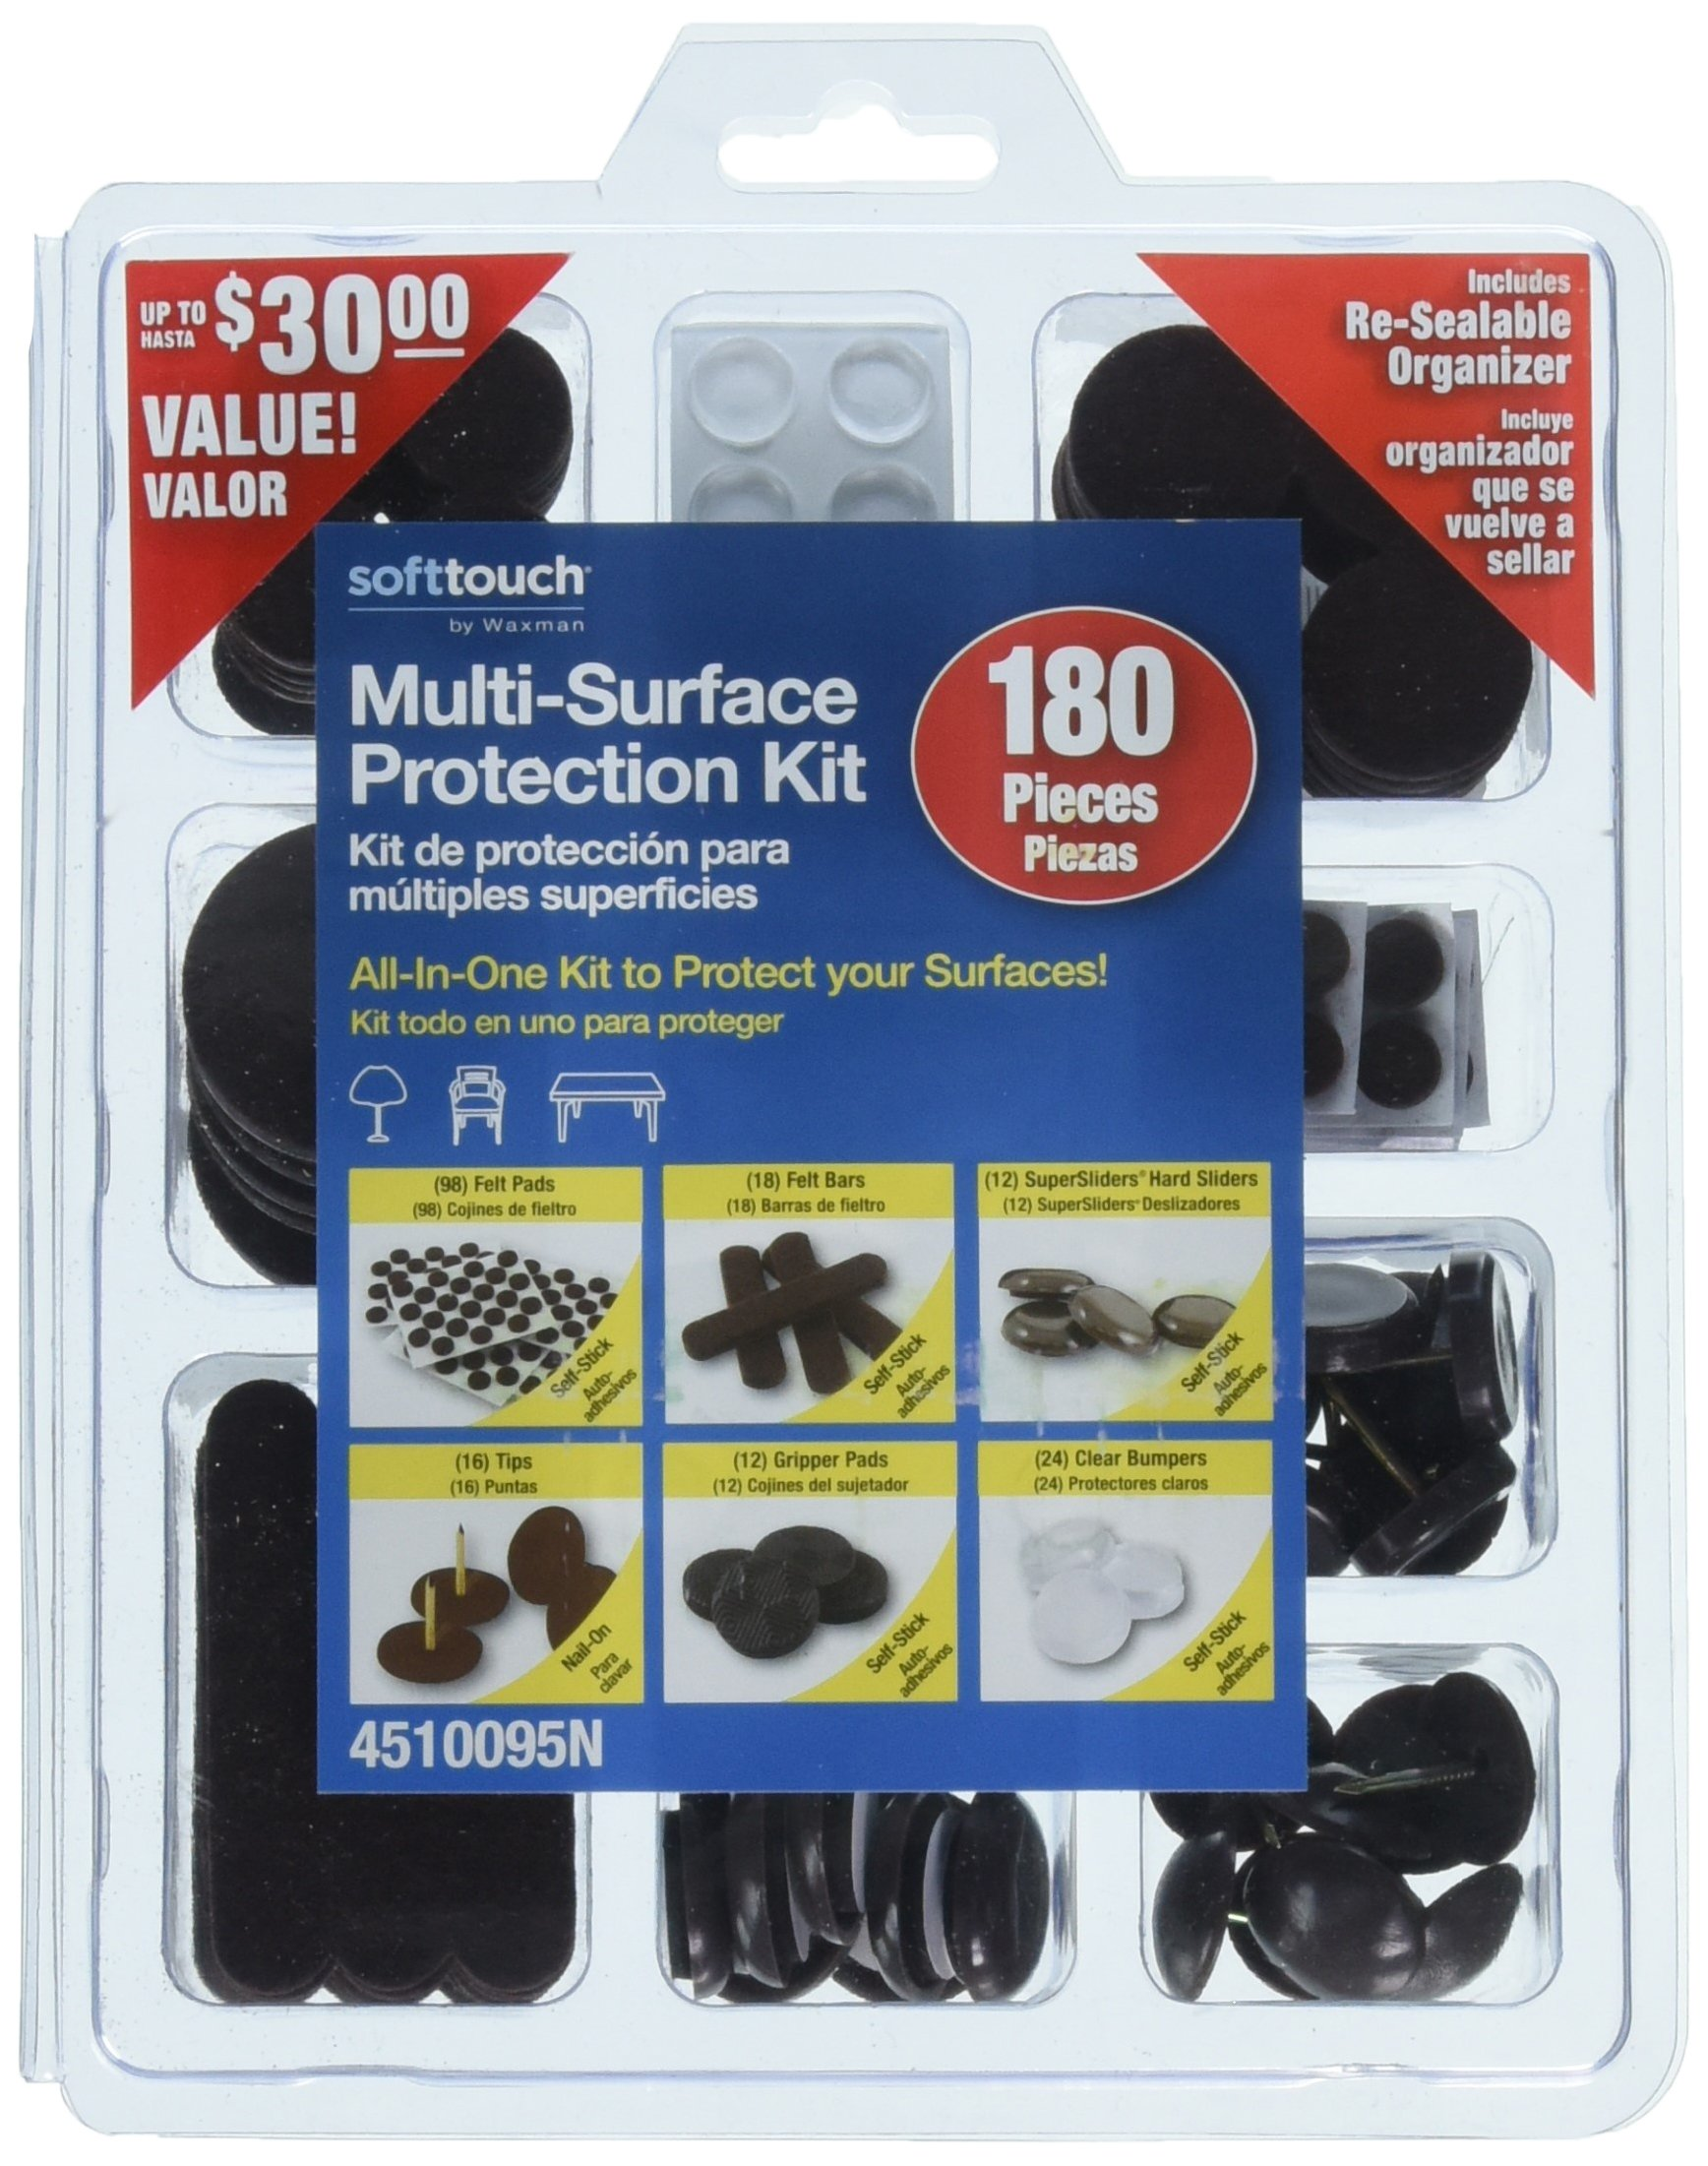 SoftTouch 4500095N Multi-Surface Hardwood & Carpet Protection Value Kit, Brown, 180 Pieces